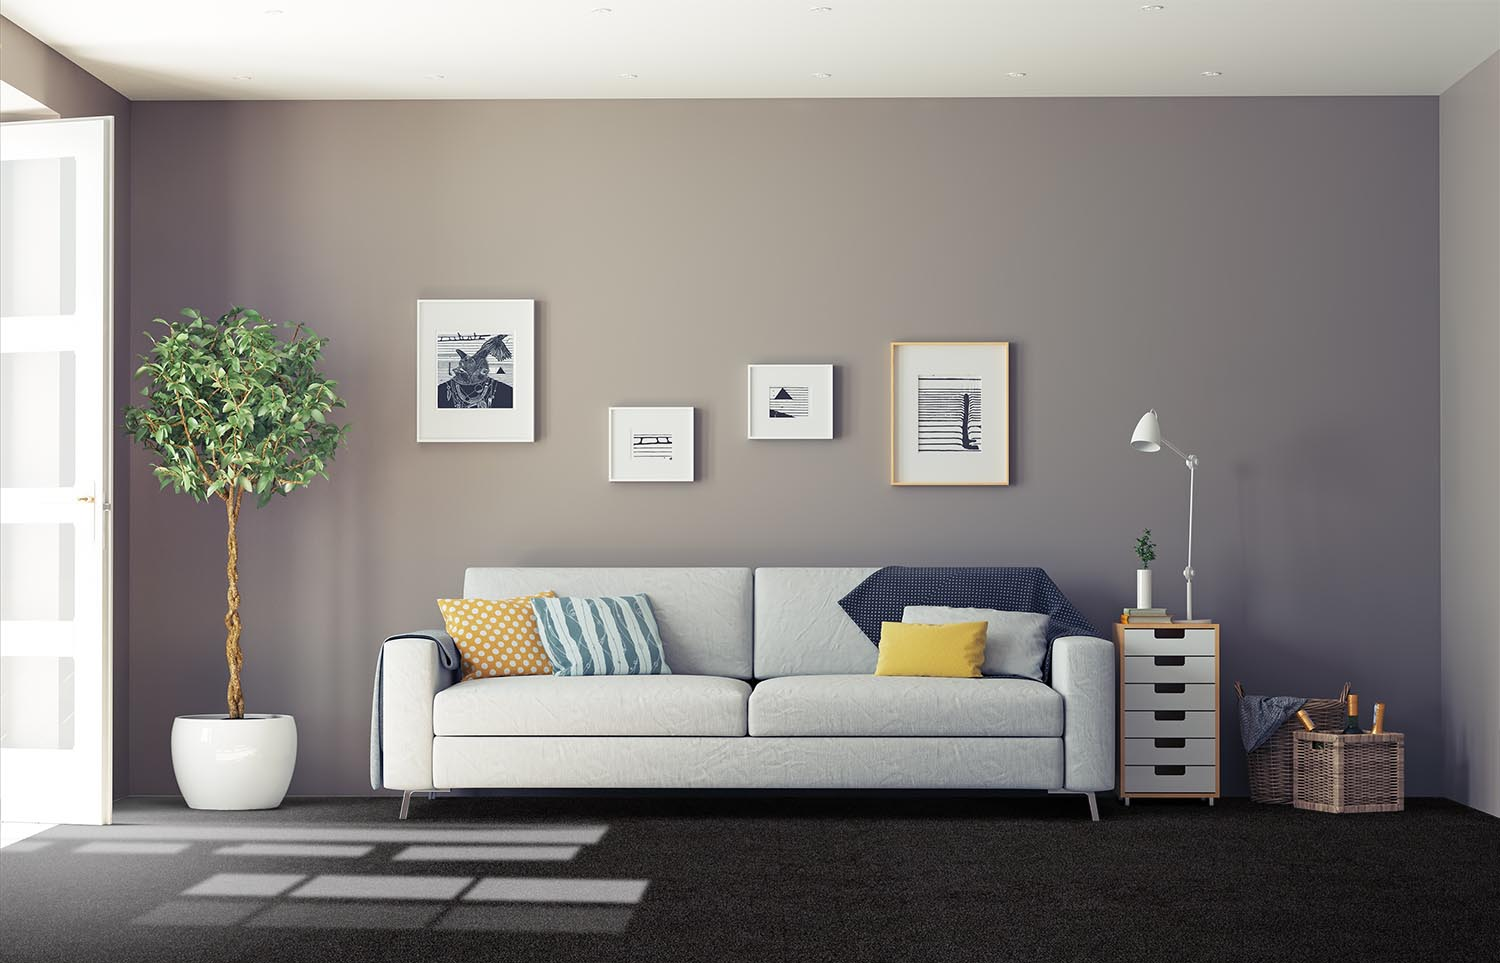 Softology - S201 - Abyss classic living room